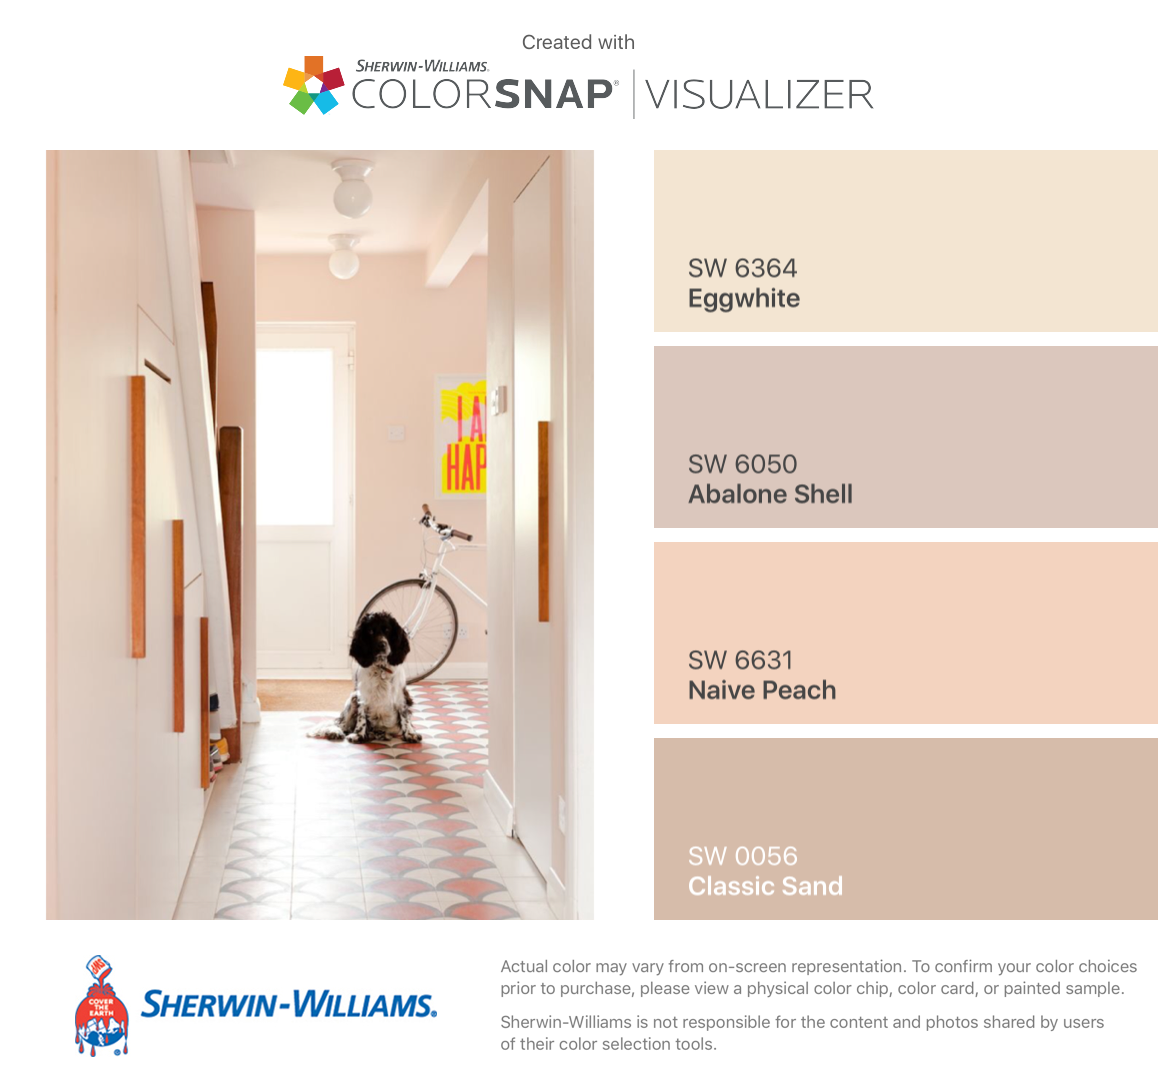 I Found These Colors With Colorsnap Visualizer For Iphone By Sherwin Willi Sherwin Williams Paint Colors Room Paint Colors Sherwin Williams Peach Paint Colors